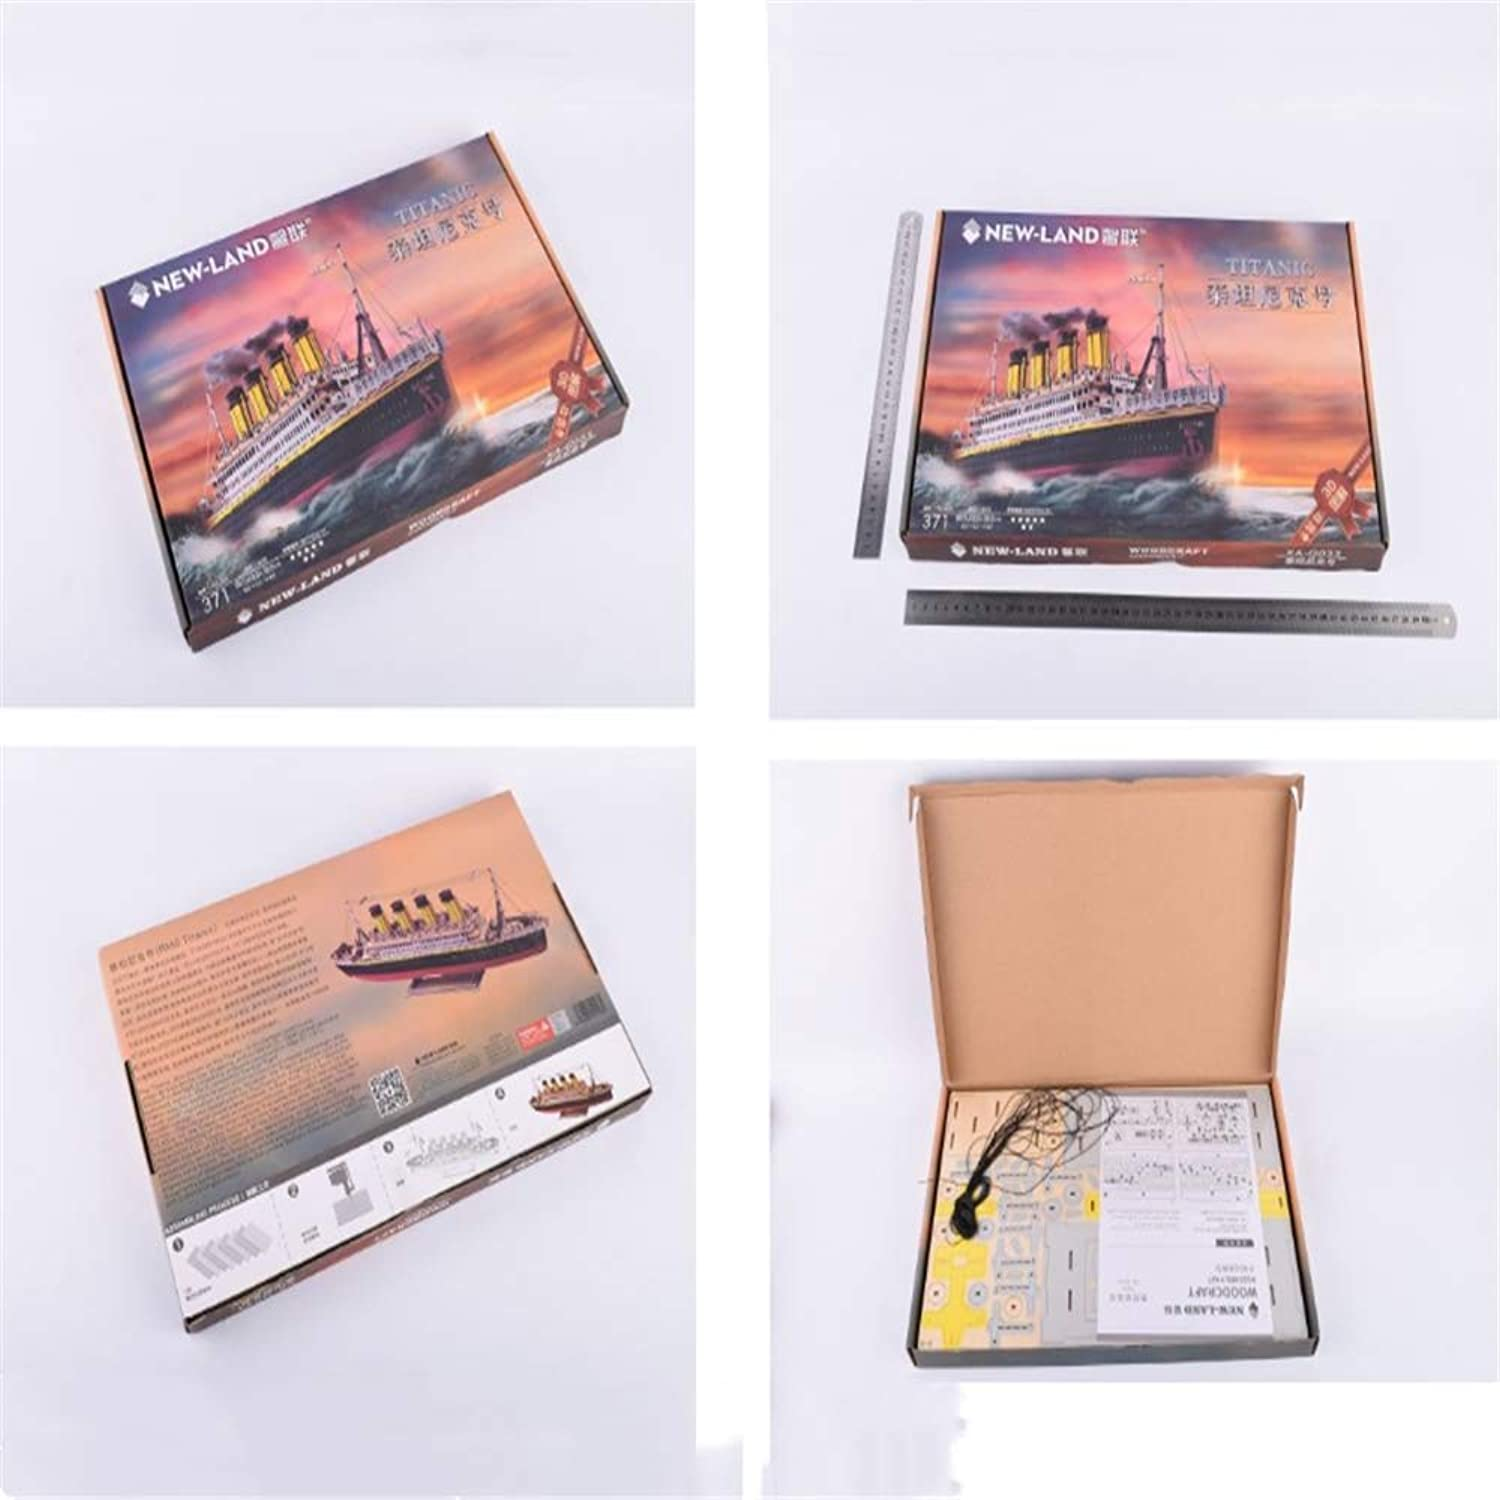 Nuoyi Titanic 3D Puzzle (Multicolor Accessories) Board Model Kit Manual 3D Puzzle Jigsaw Refined Development Intelligence Investing Interest